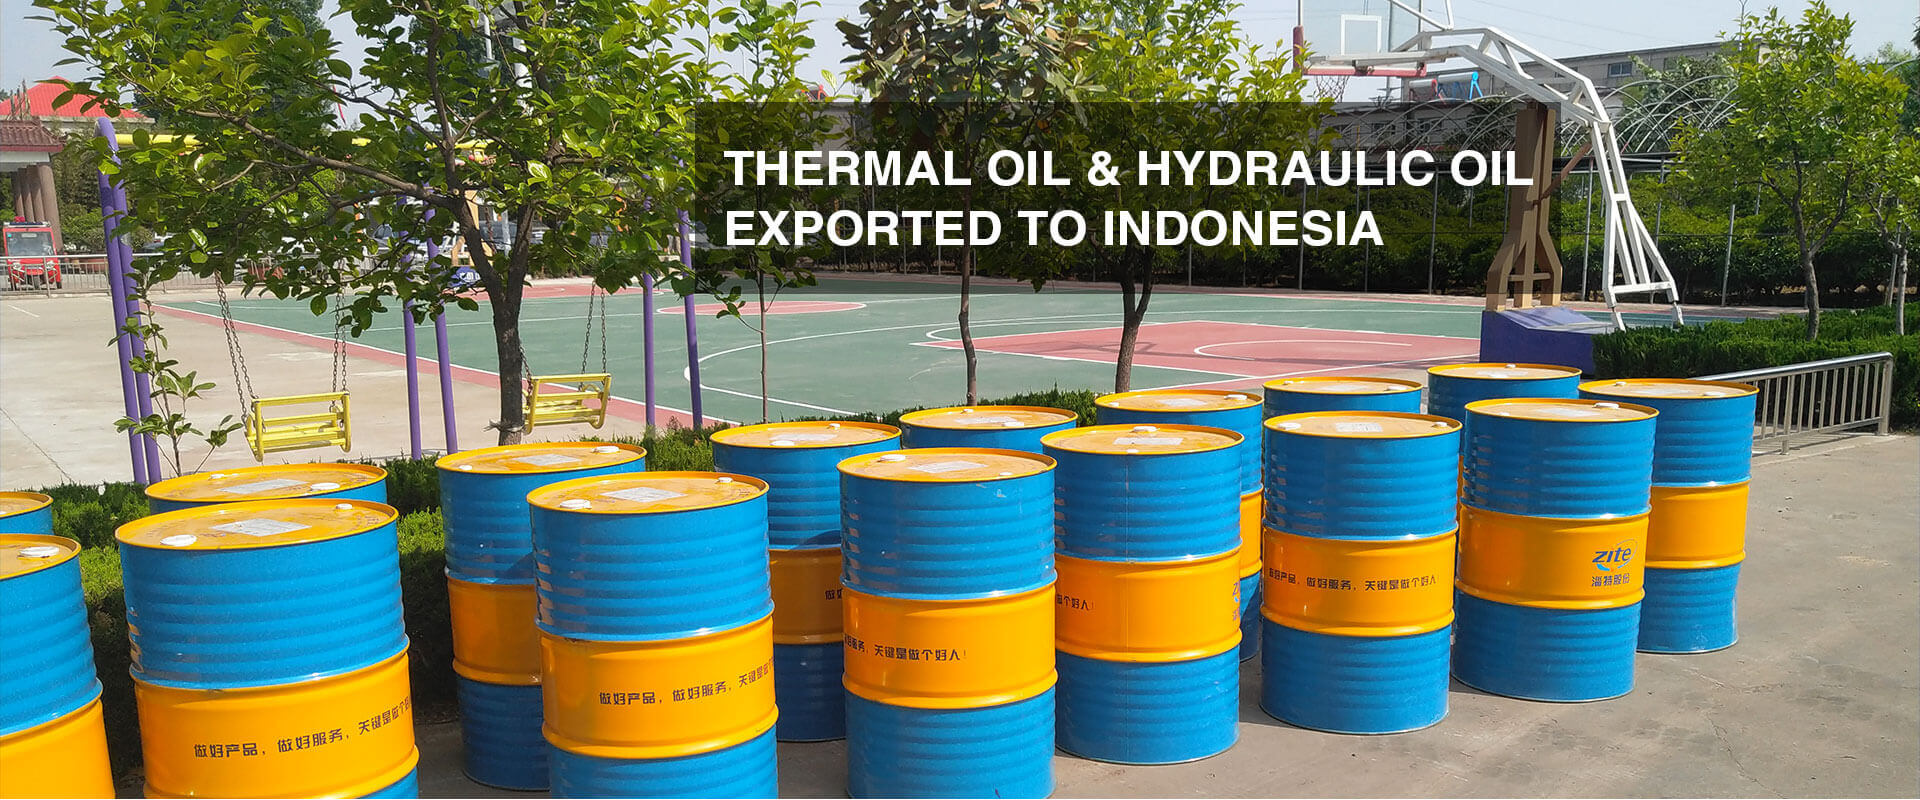 Thermal Oil & Hydraulic Oil Exported to Indonesia